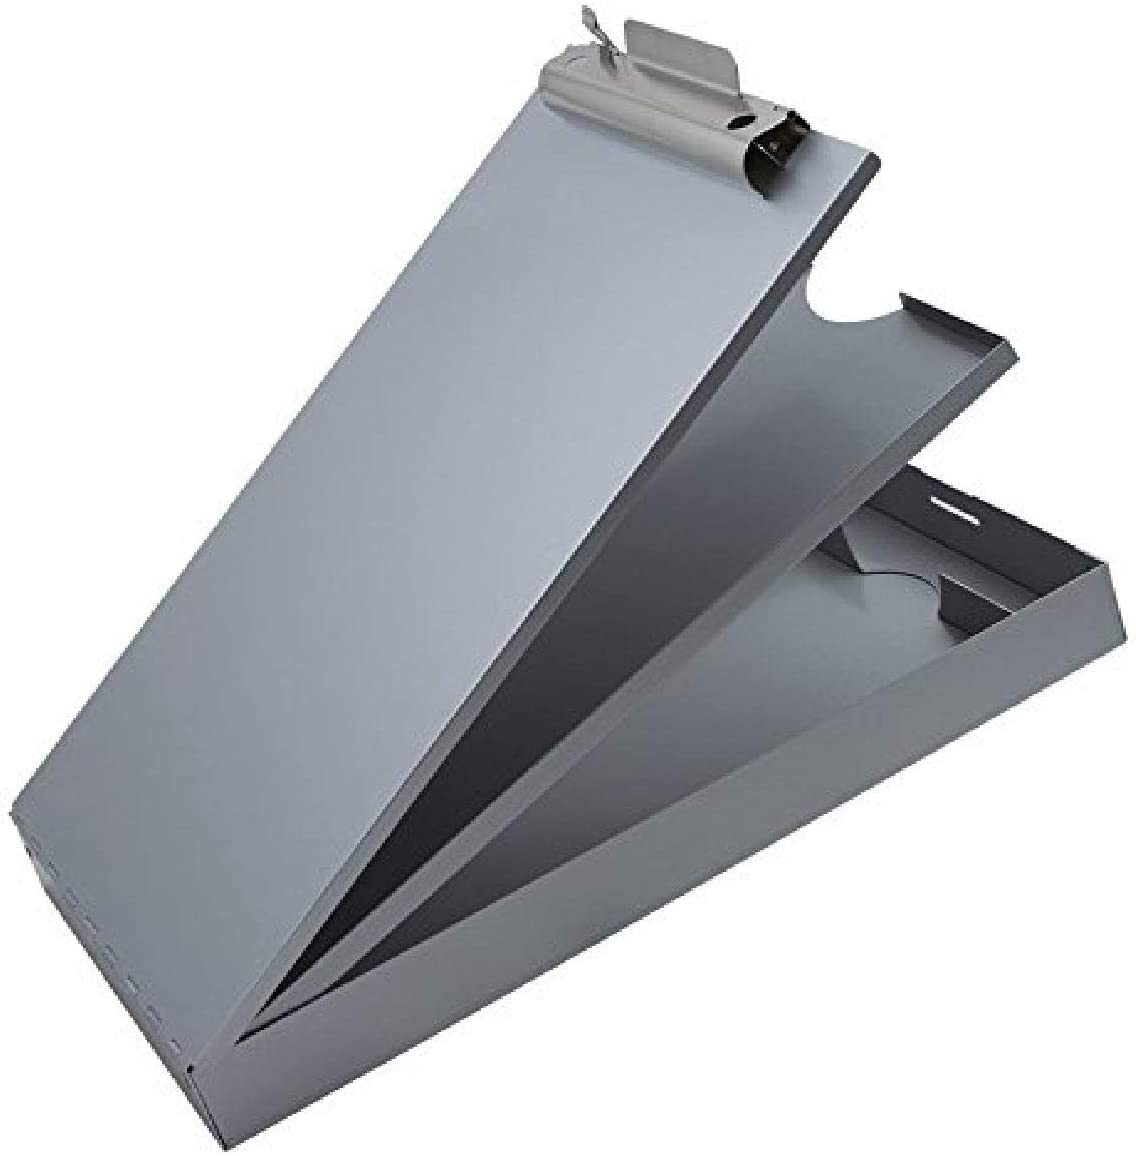 Saunders Recycled Aluminum Cruiser-Mate Storage Clipboard – Form Holder with Dual Storage and Self Locking Latch. Office Supplies